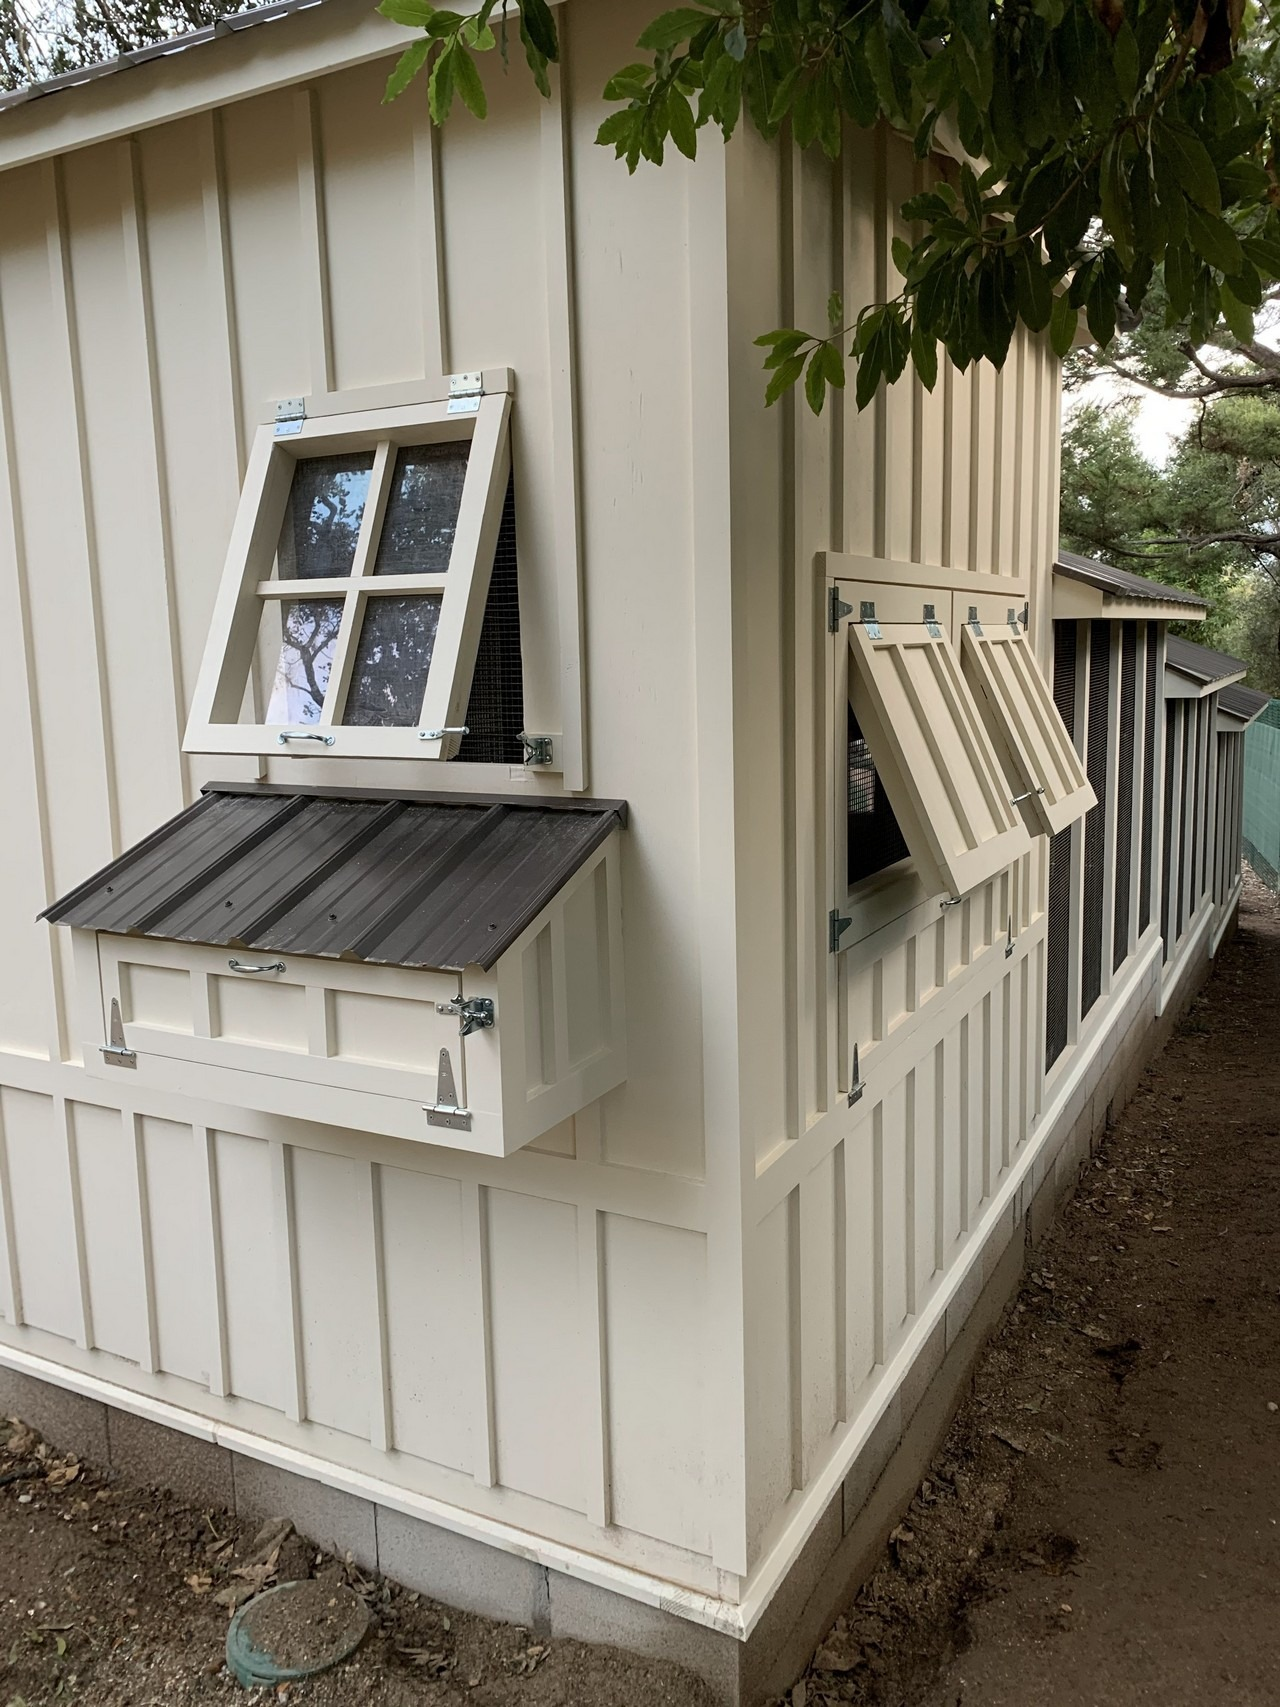 egg hutch and tilt out windows on the shed-henhouse combo of a custom Craftsman chicken coop in Santa Barbara, CA